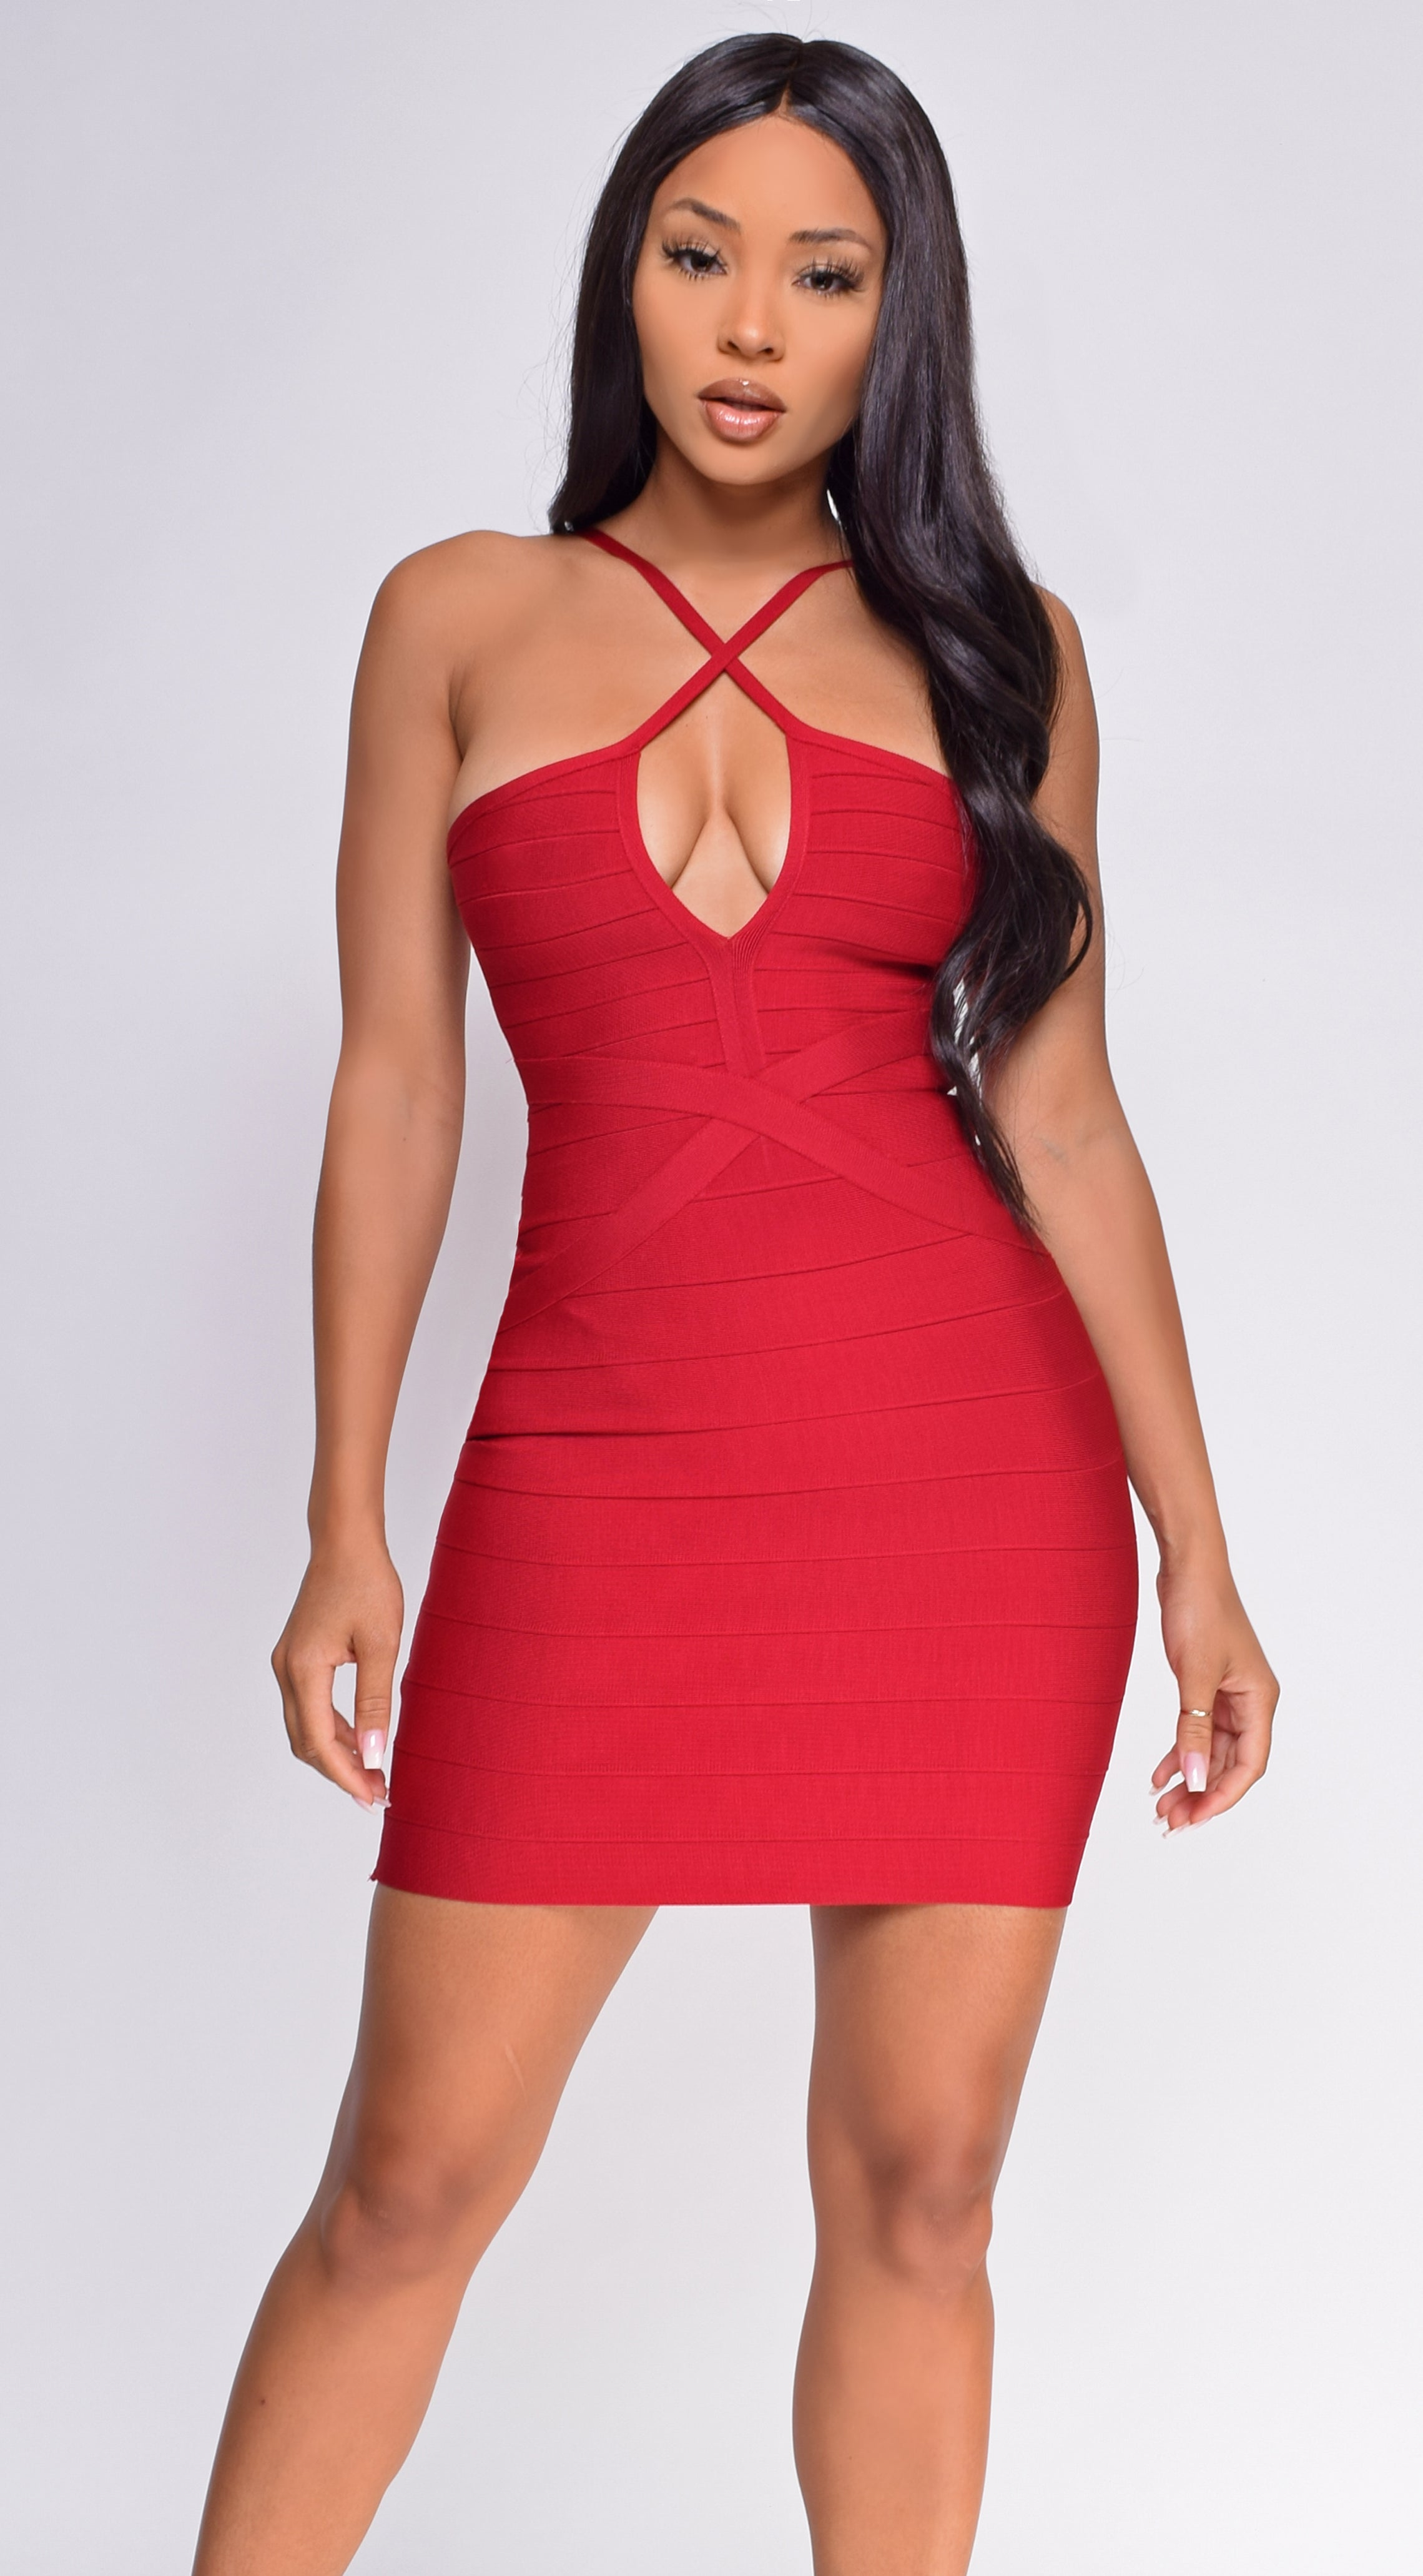 Karalana Wine Red Bandage Dress